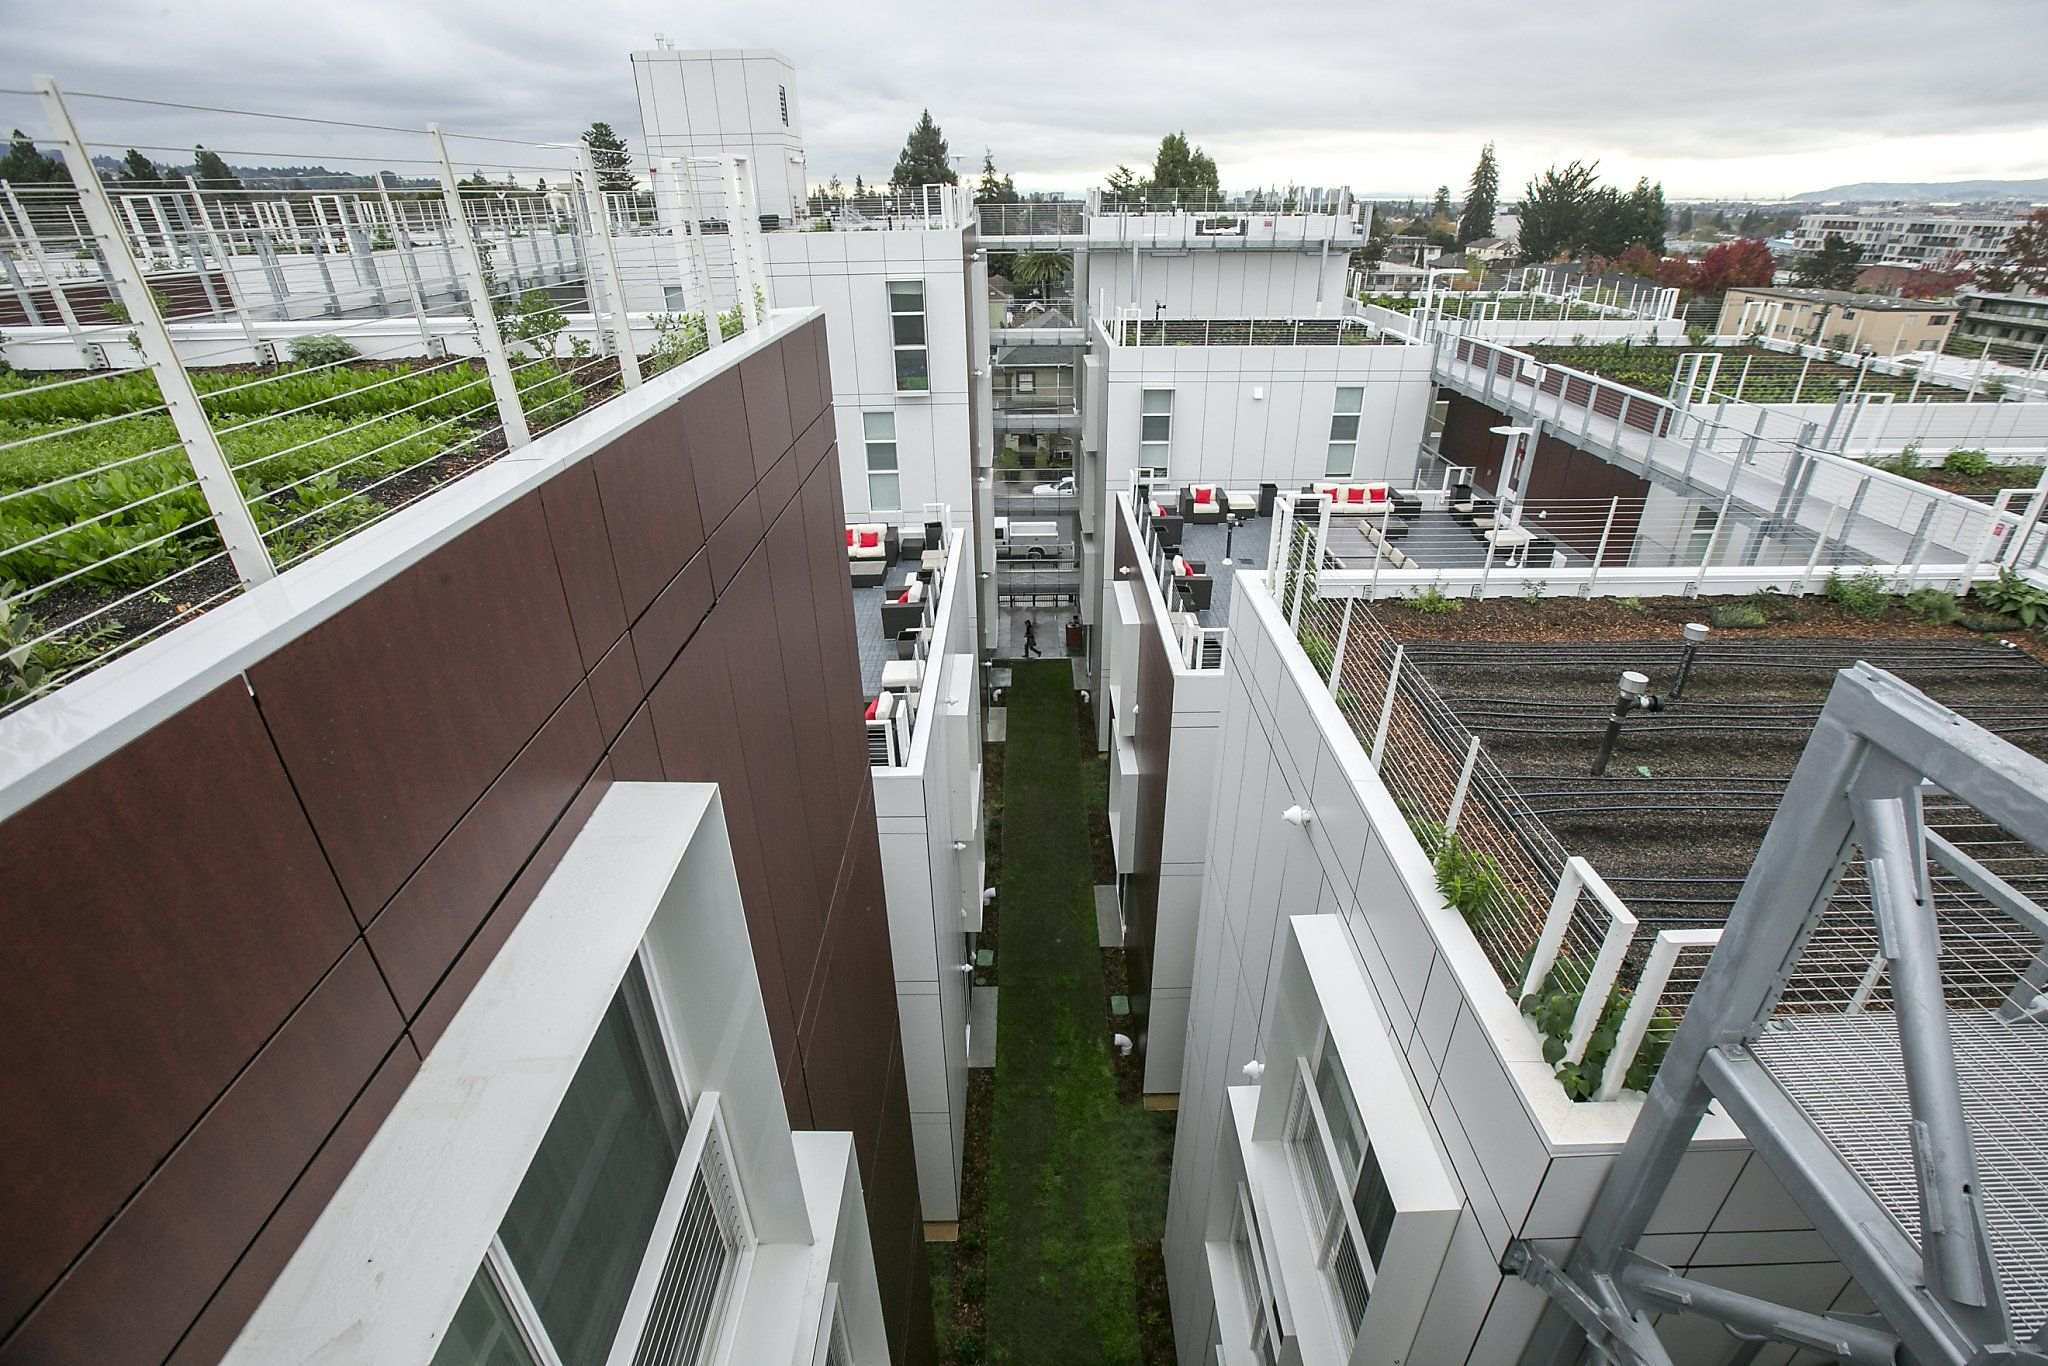 Berkeley Sprouts Creative Housing Topped By A Working Farm Small Apartment Building Home And Garden Garden Lighting Lanterns